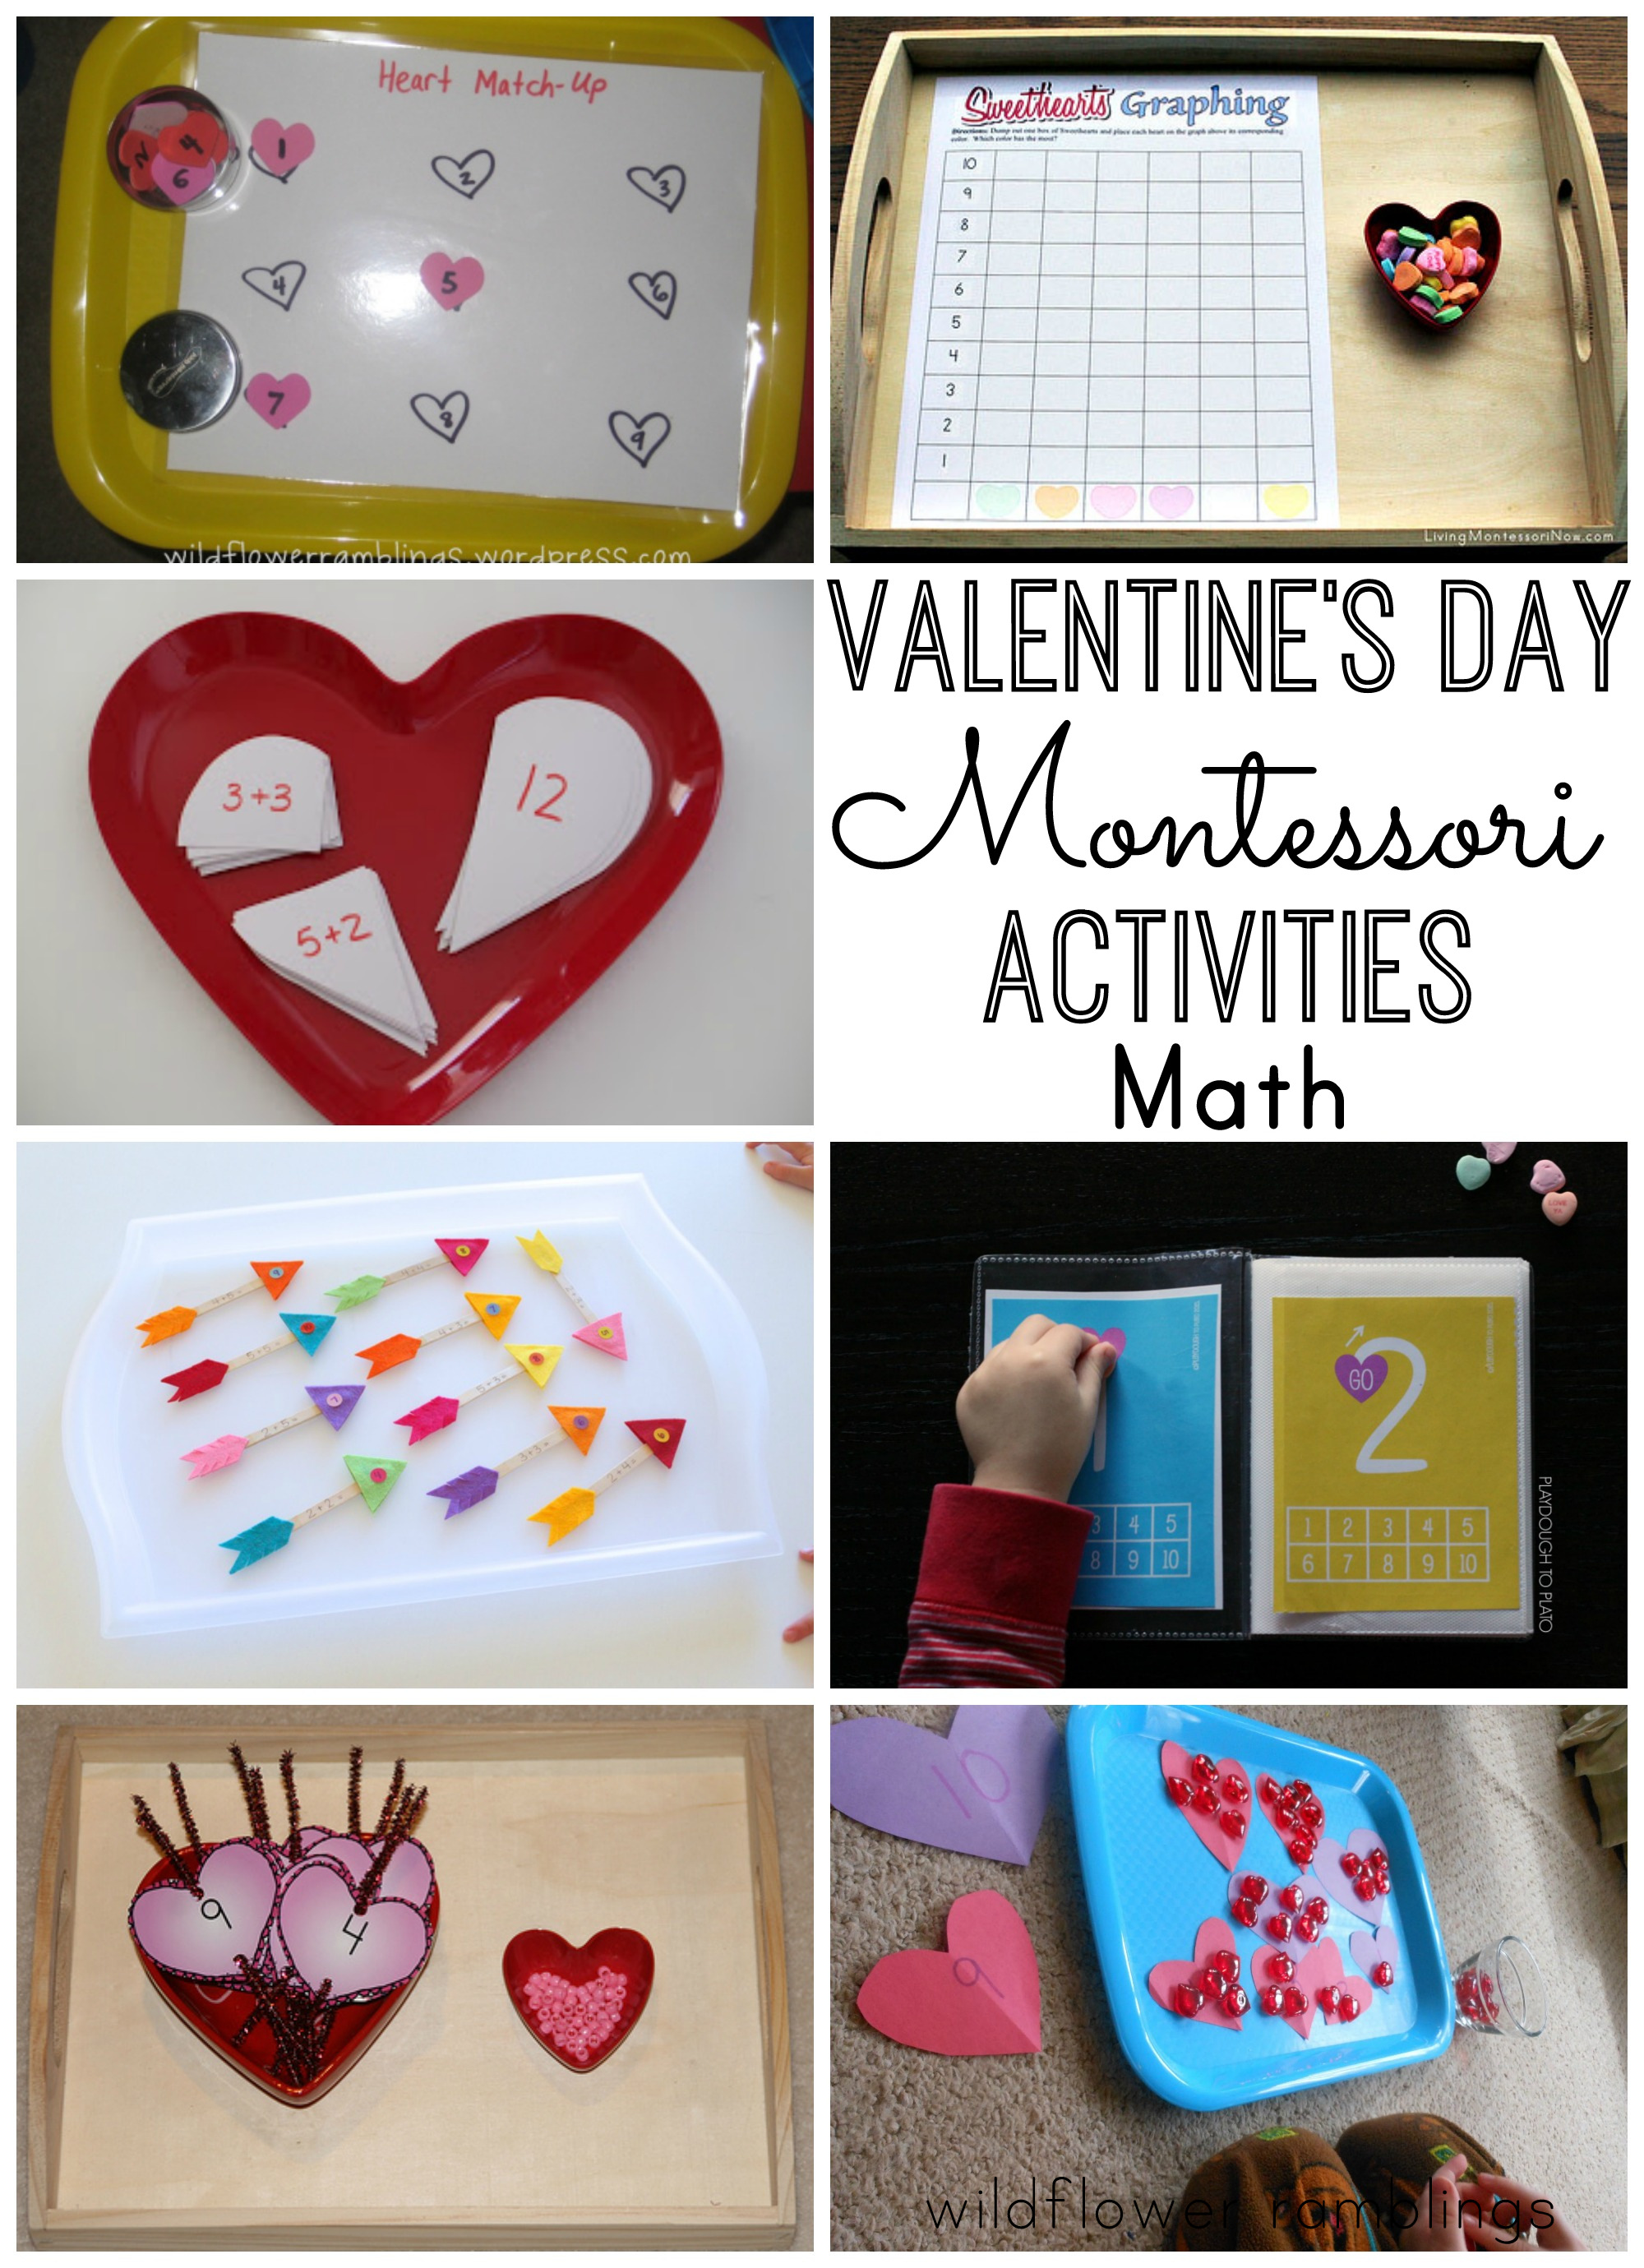 sight  Ramblings Day  Valentine's  Montessori montessori Wildflower activities Activities word